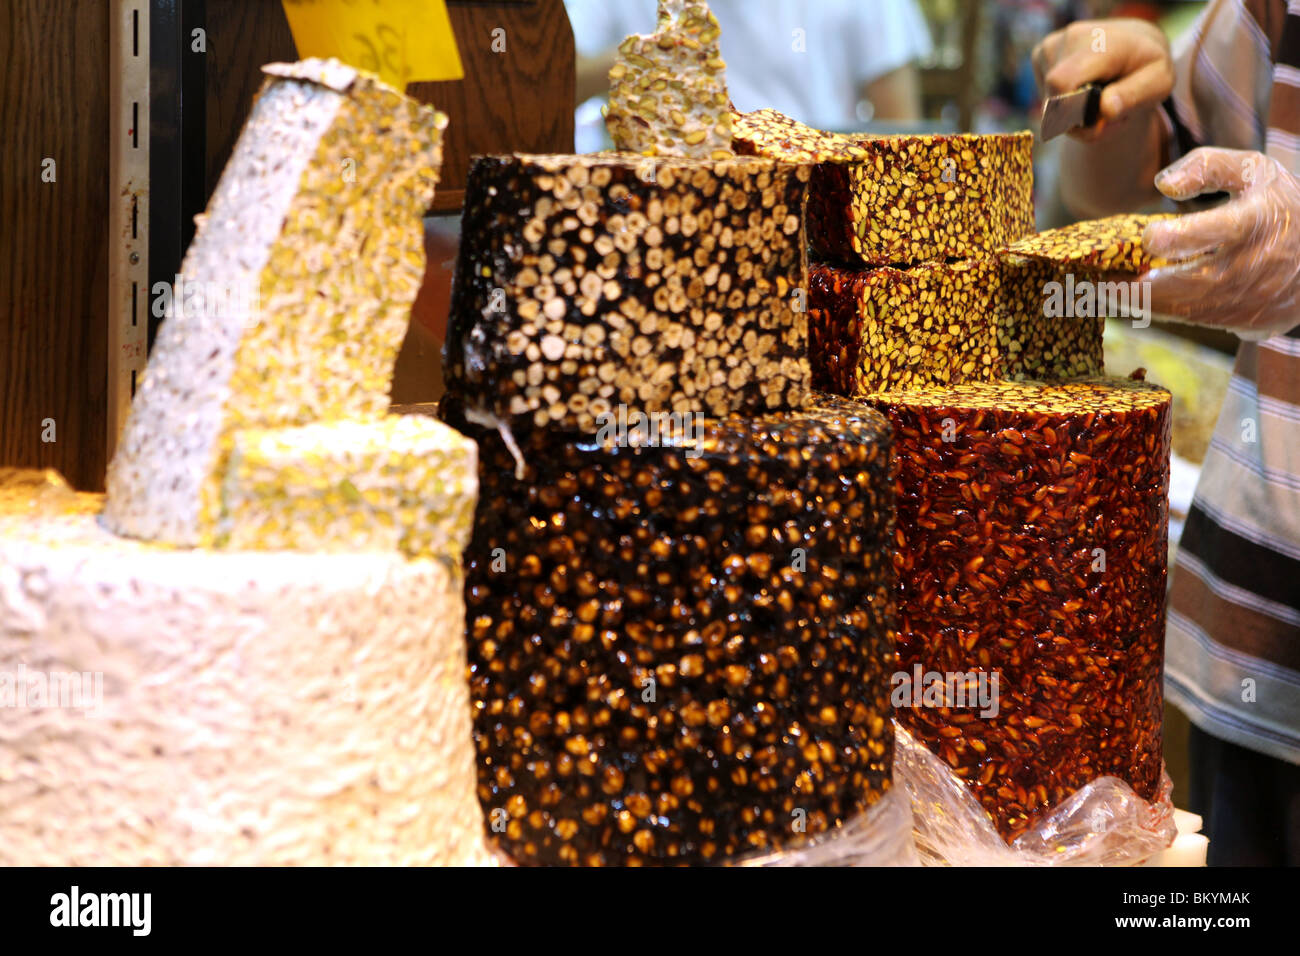 Halva sweets with pistachios on display at the Spice Bazaar, Sultanahmet, Istanbul, Turkey. - Stock Image